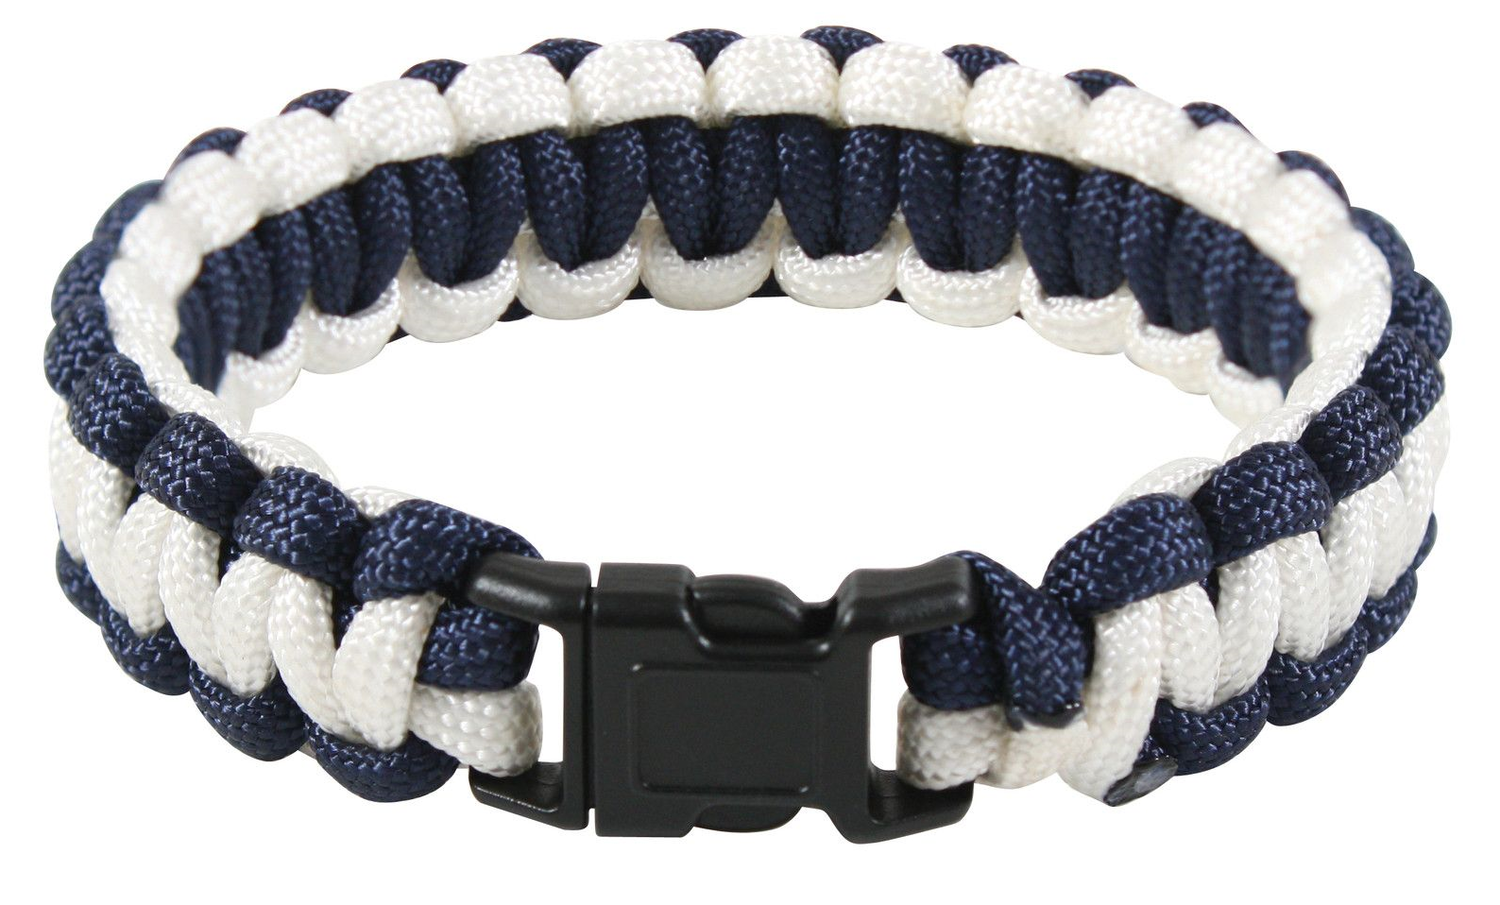 Rothco Two-Tone Paracord Bracelet Midnight Blue & White 937